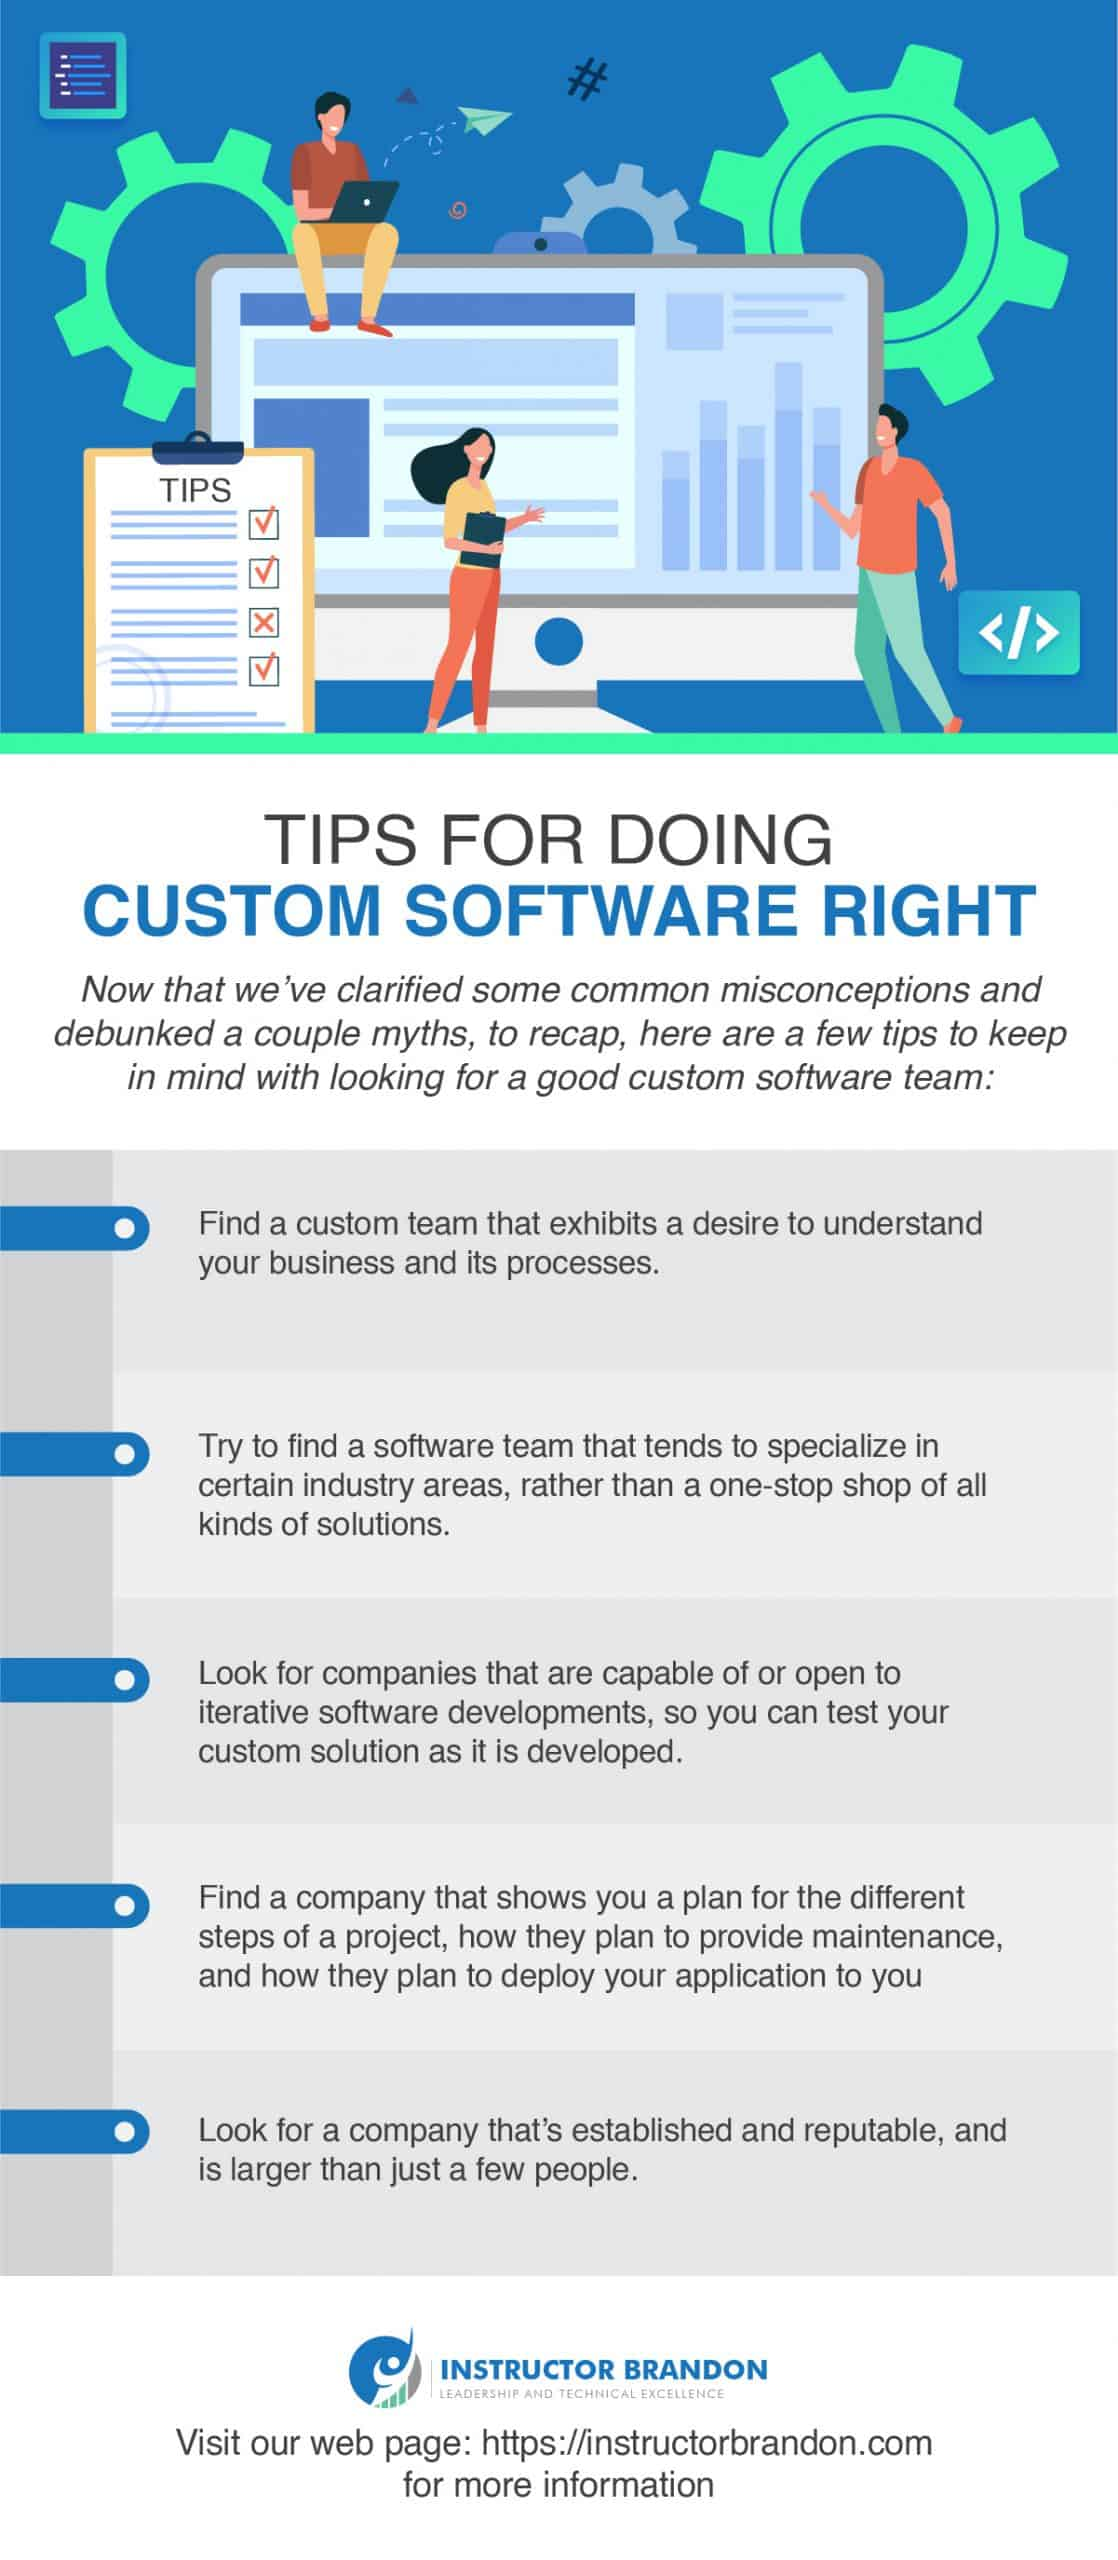 How customize your D365 ERP software right?